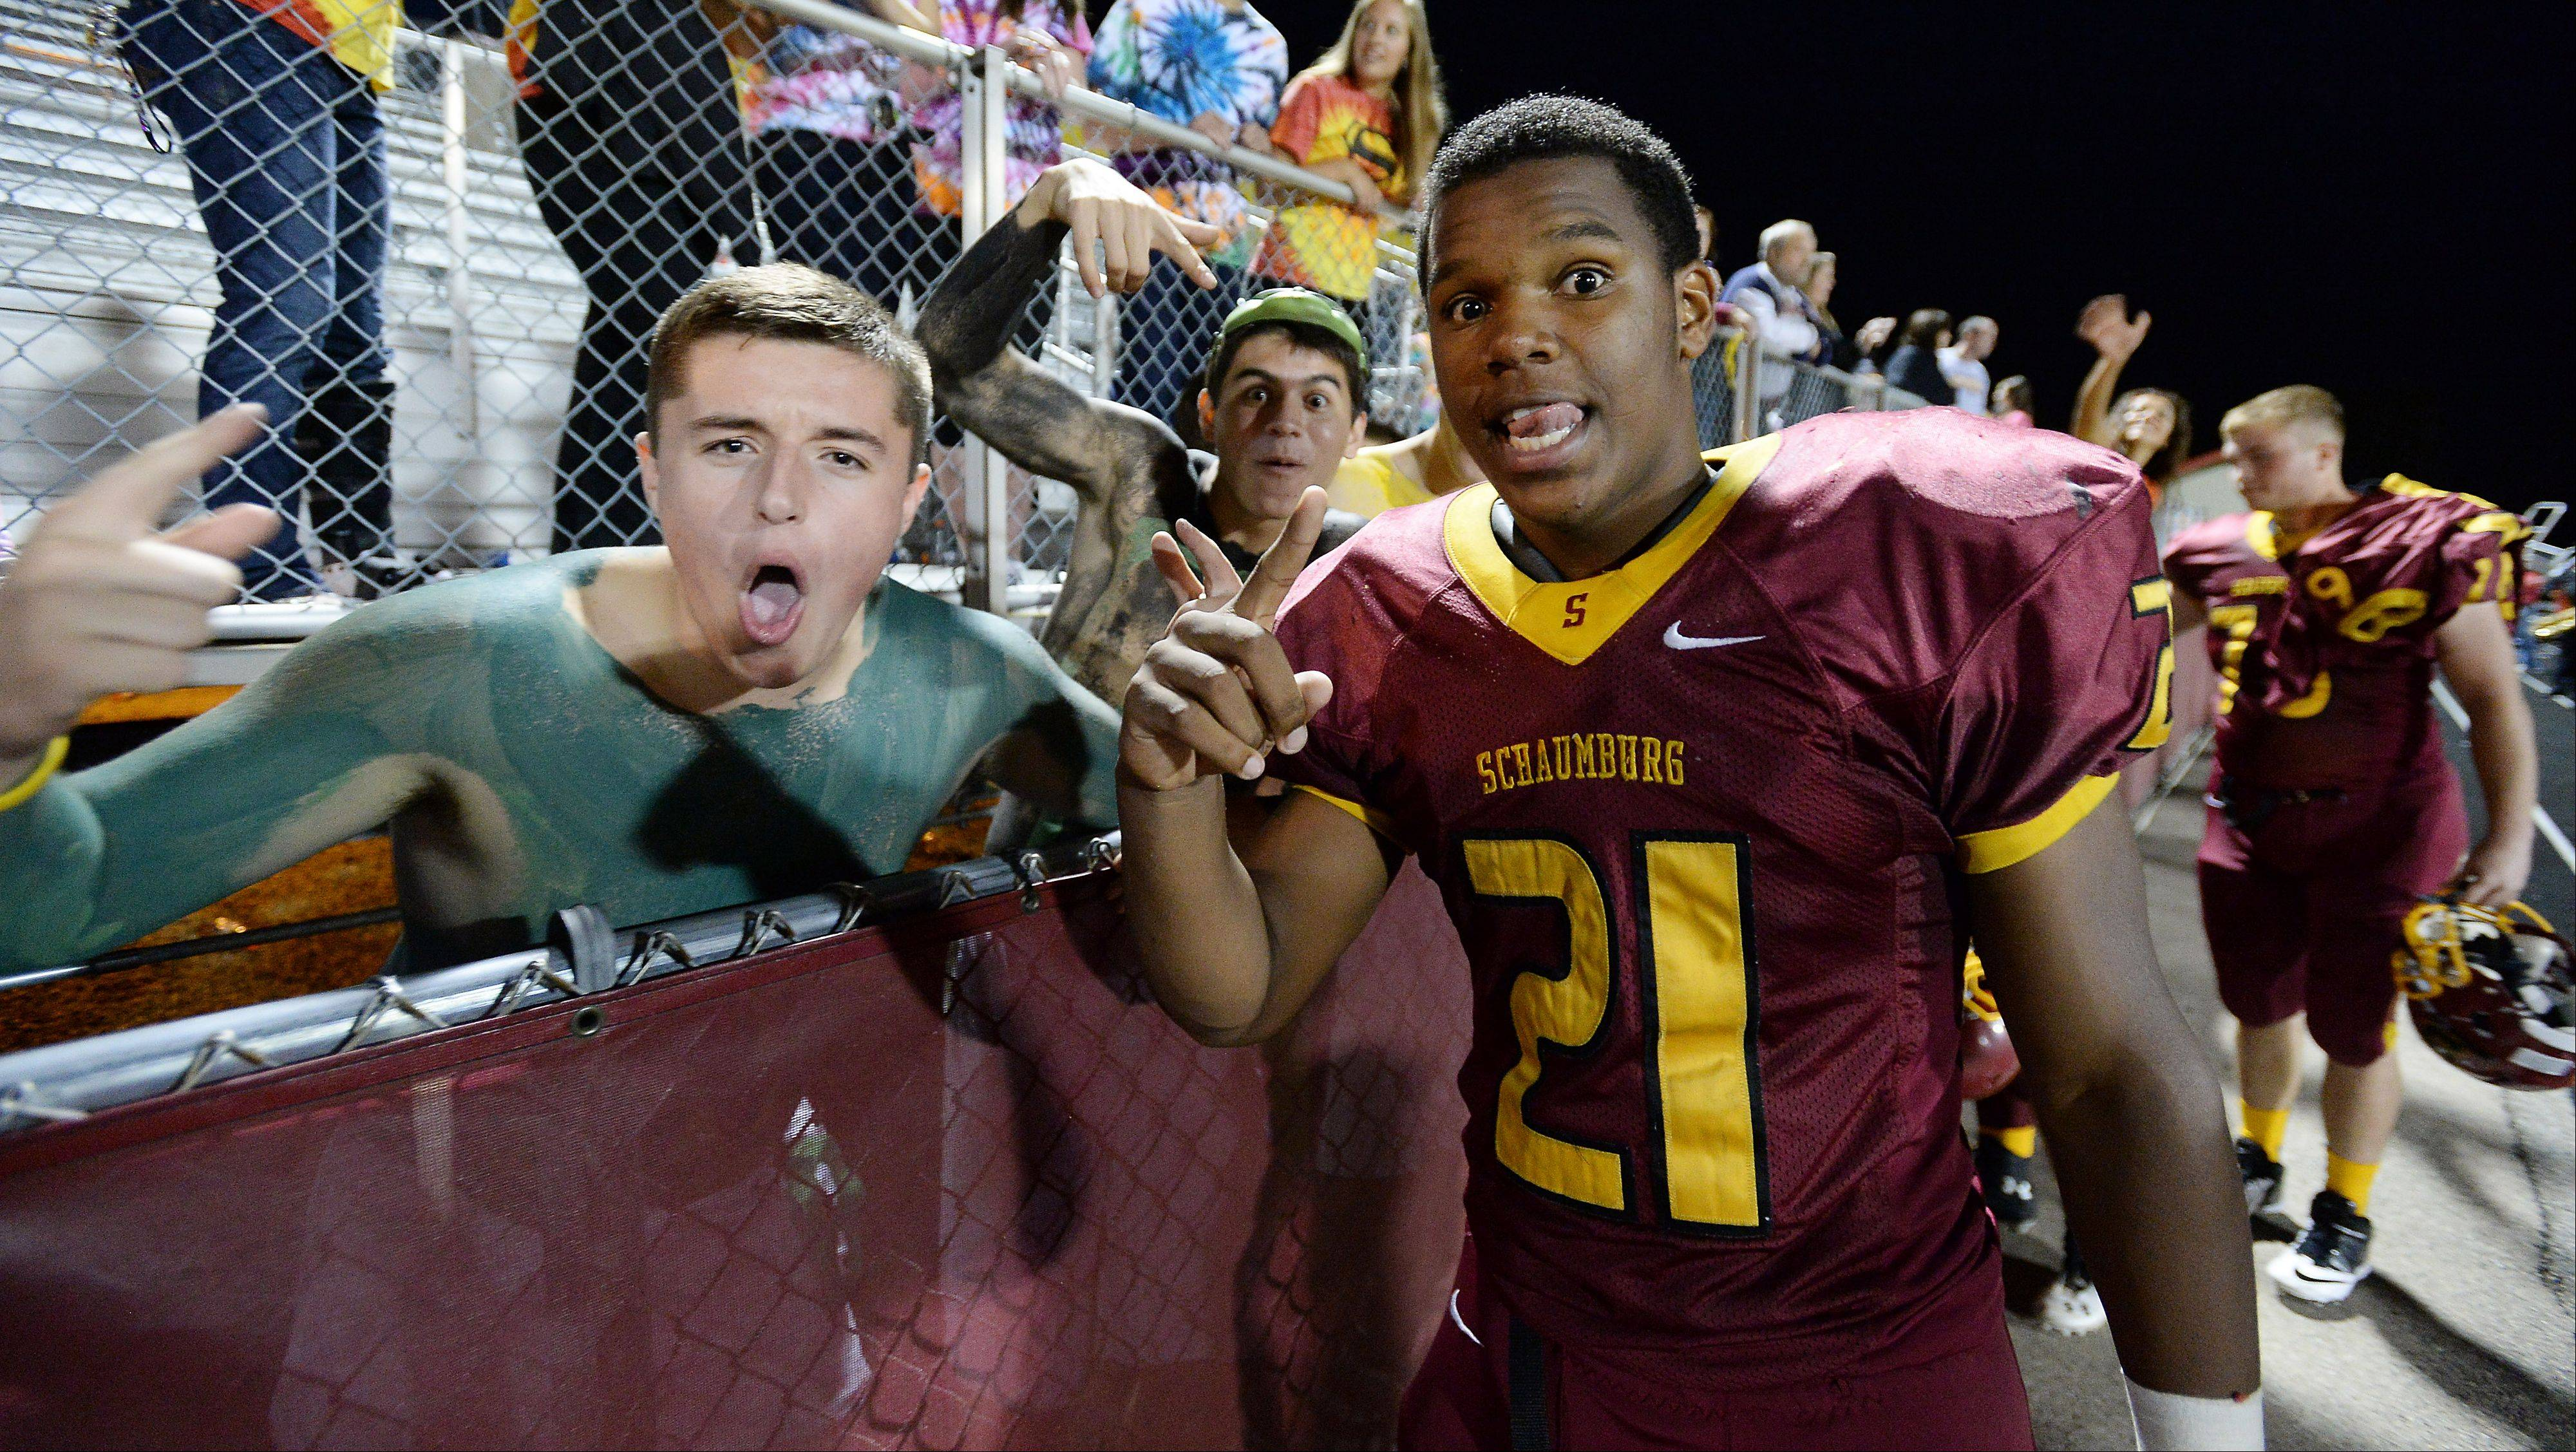 Schaumburg's Justice Macneal-Young celebrates with the fans after the Saxons beat Barrington 33-21.